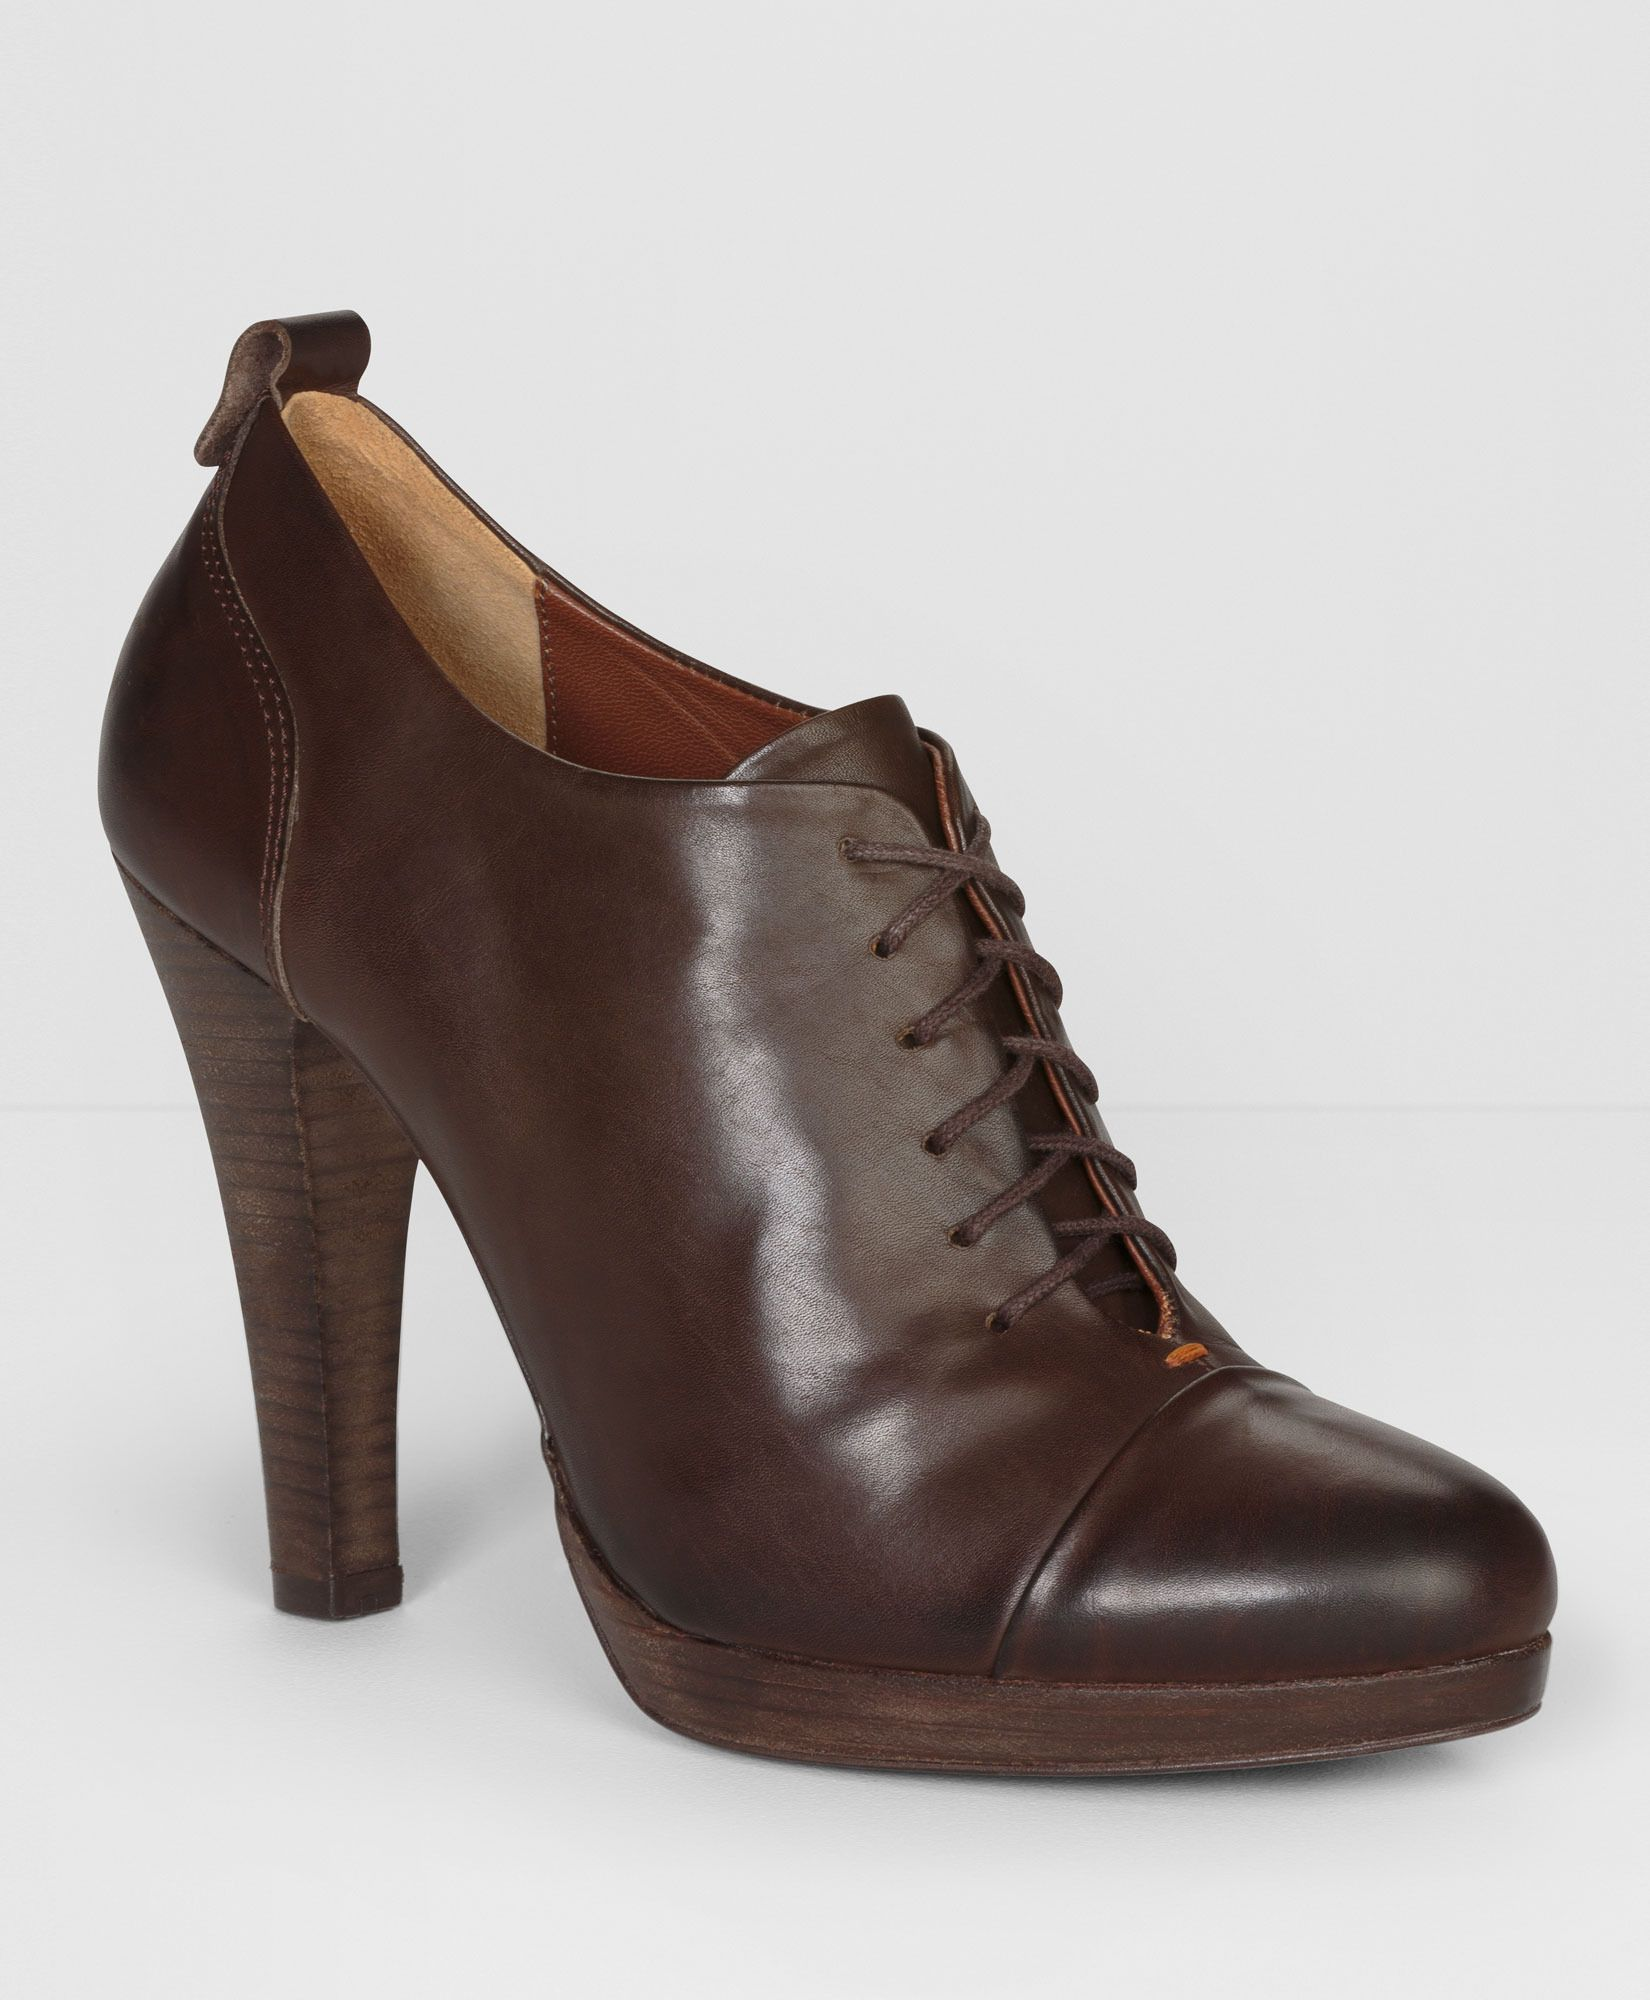 Fashion style How to oxford wear high heels for woman